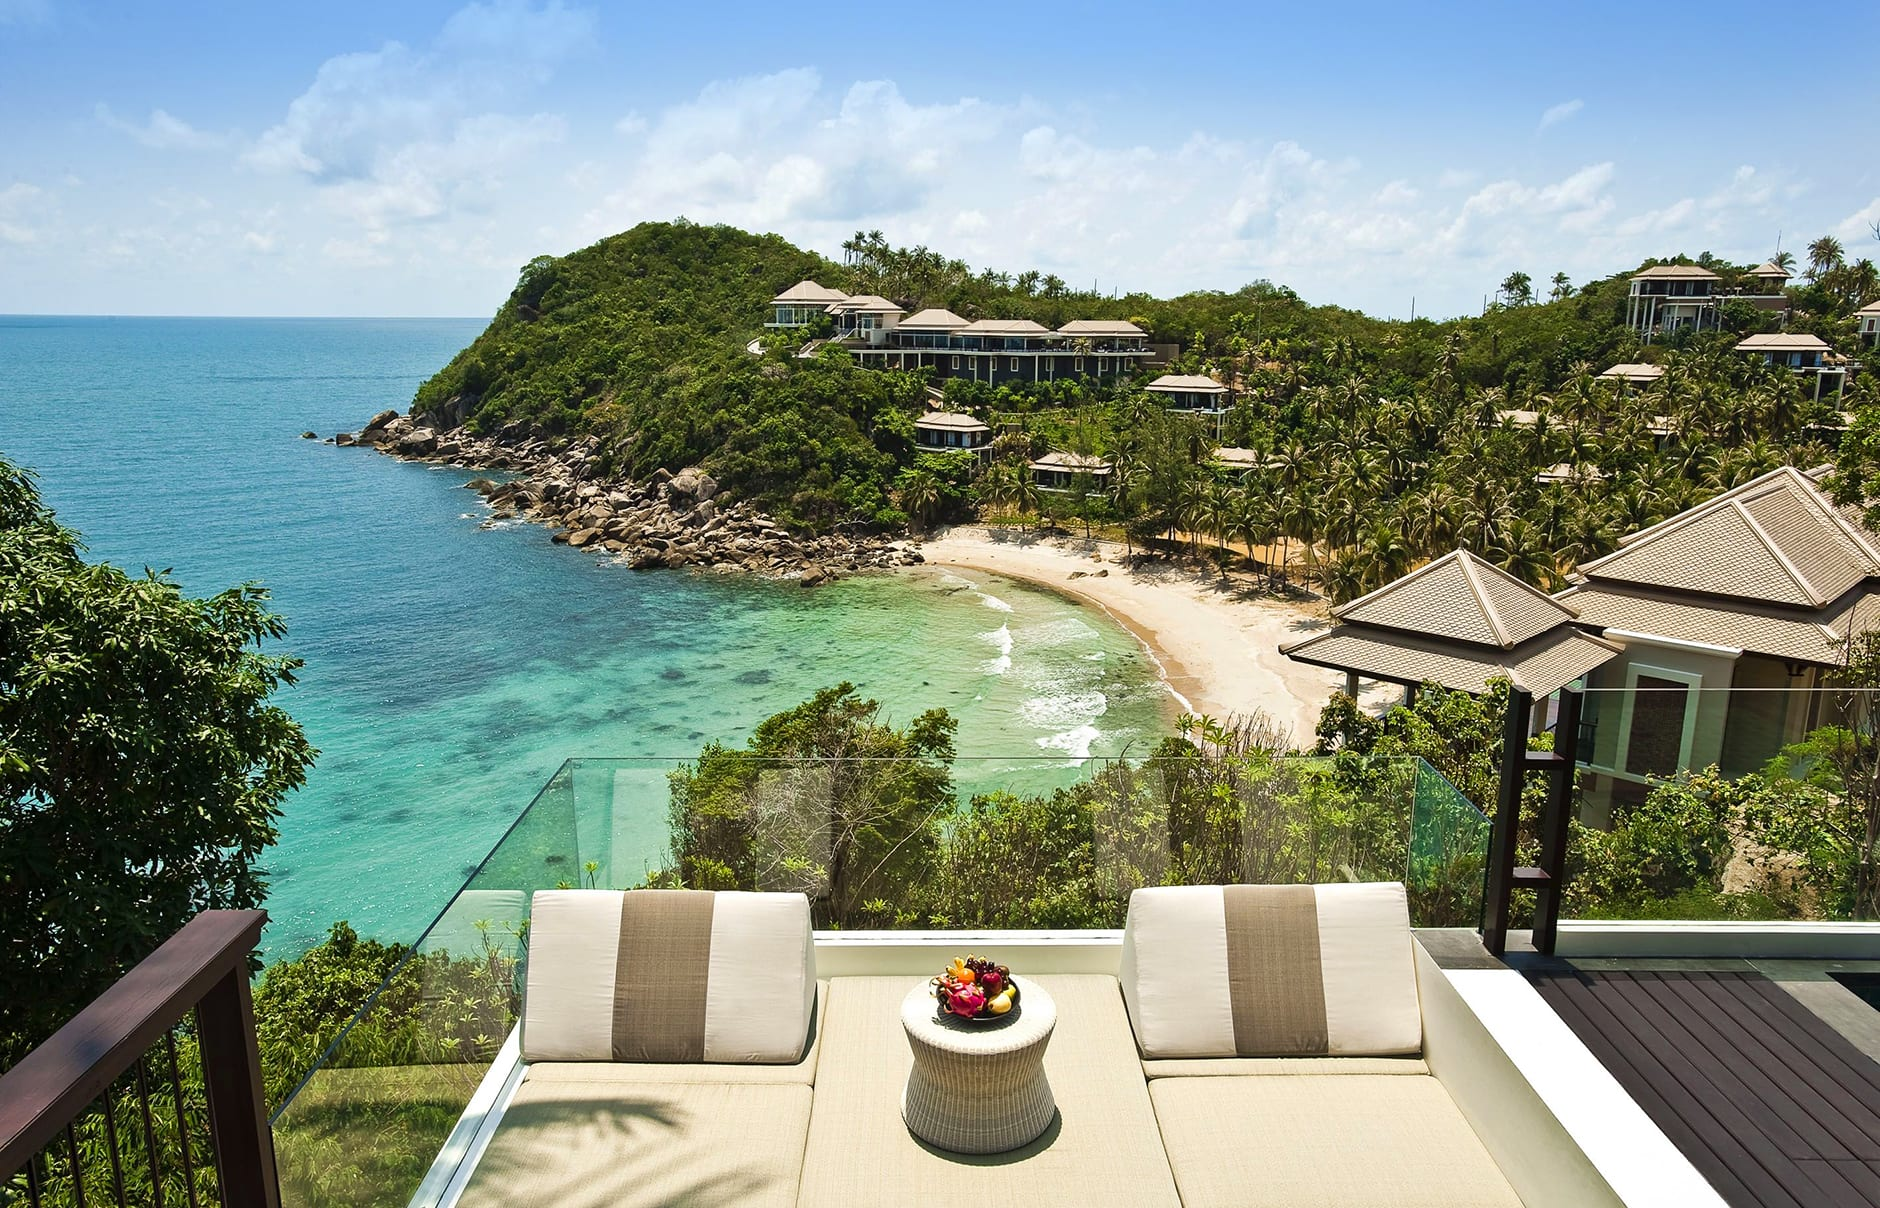 Banyan tree samui koh samui luxury hotels travelplusstyle for Hotels koh samui